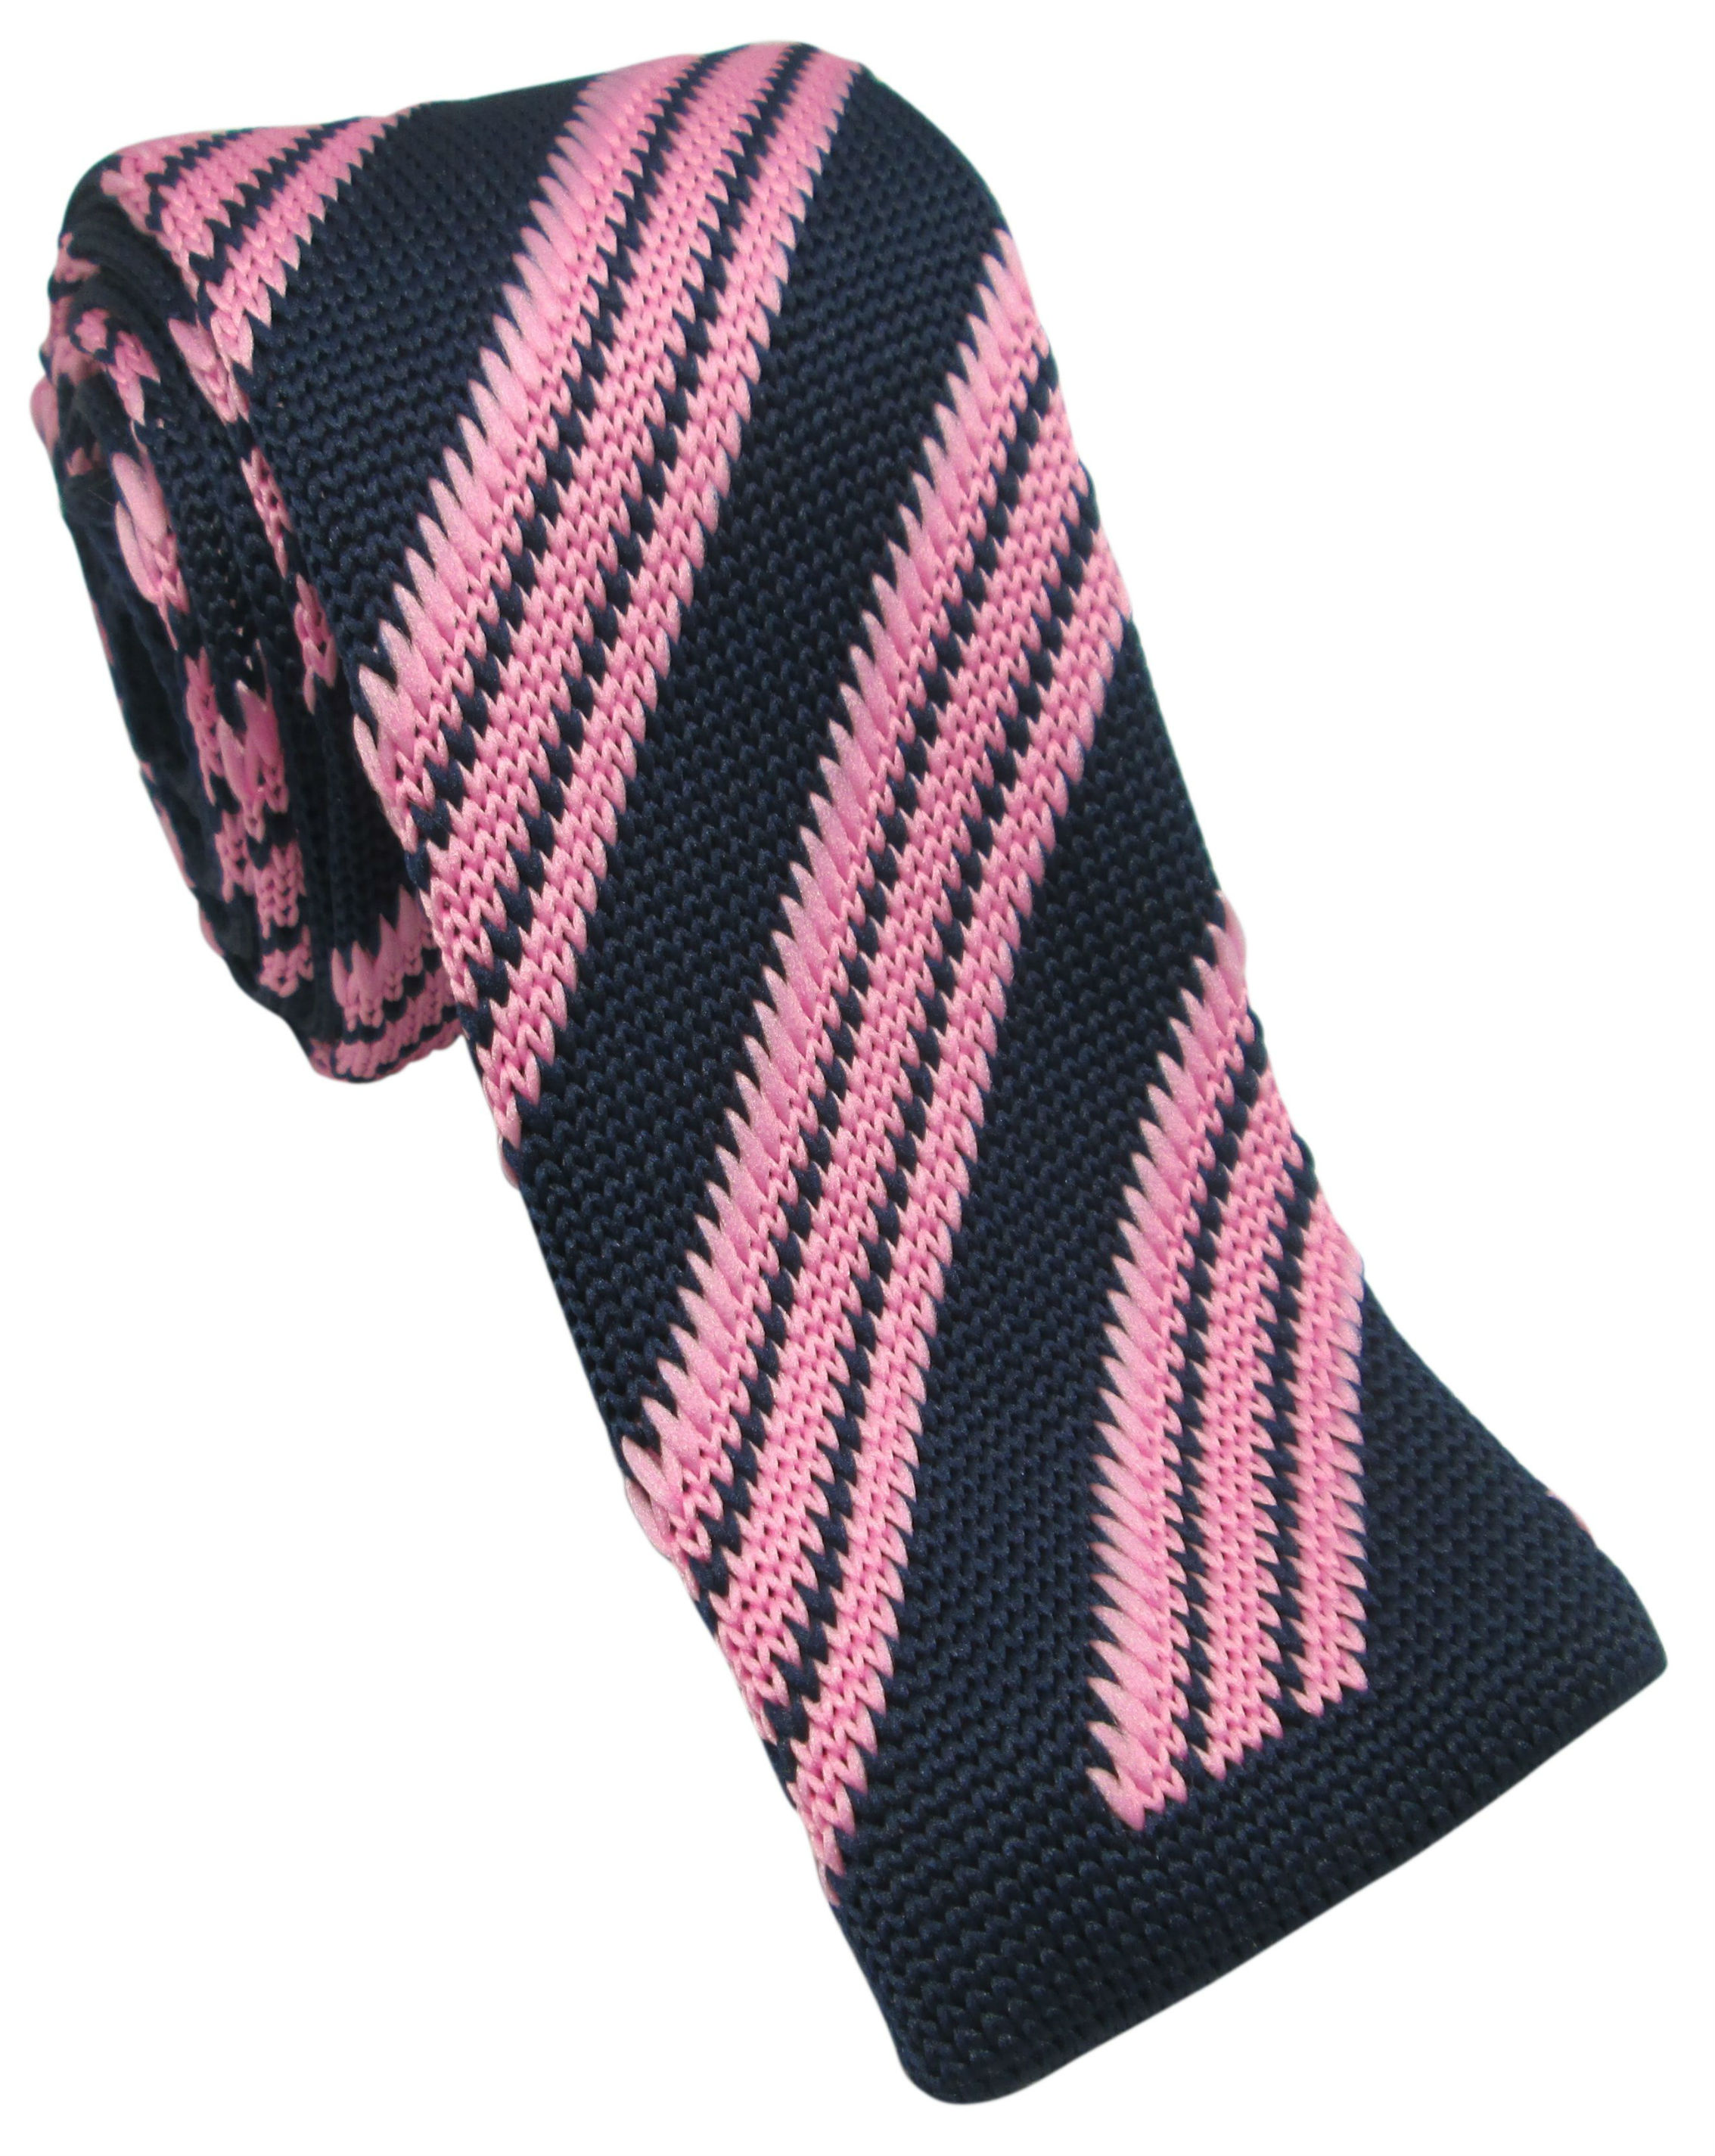 Navy with Pink Striped Knitted Tie